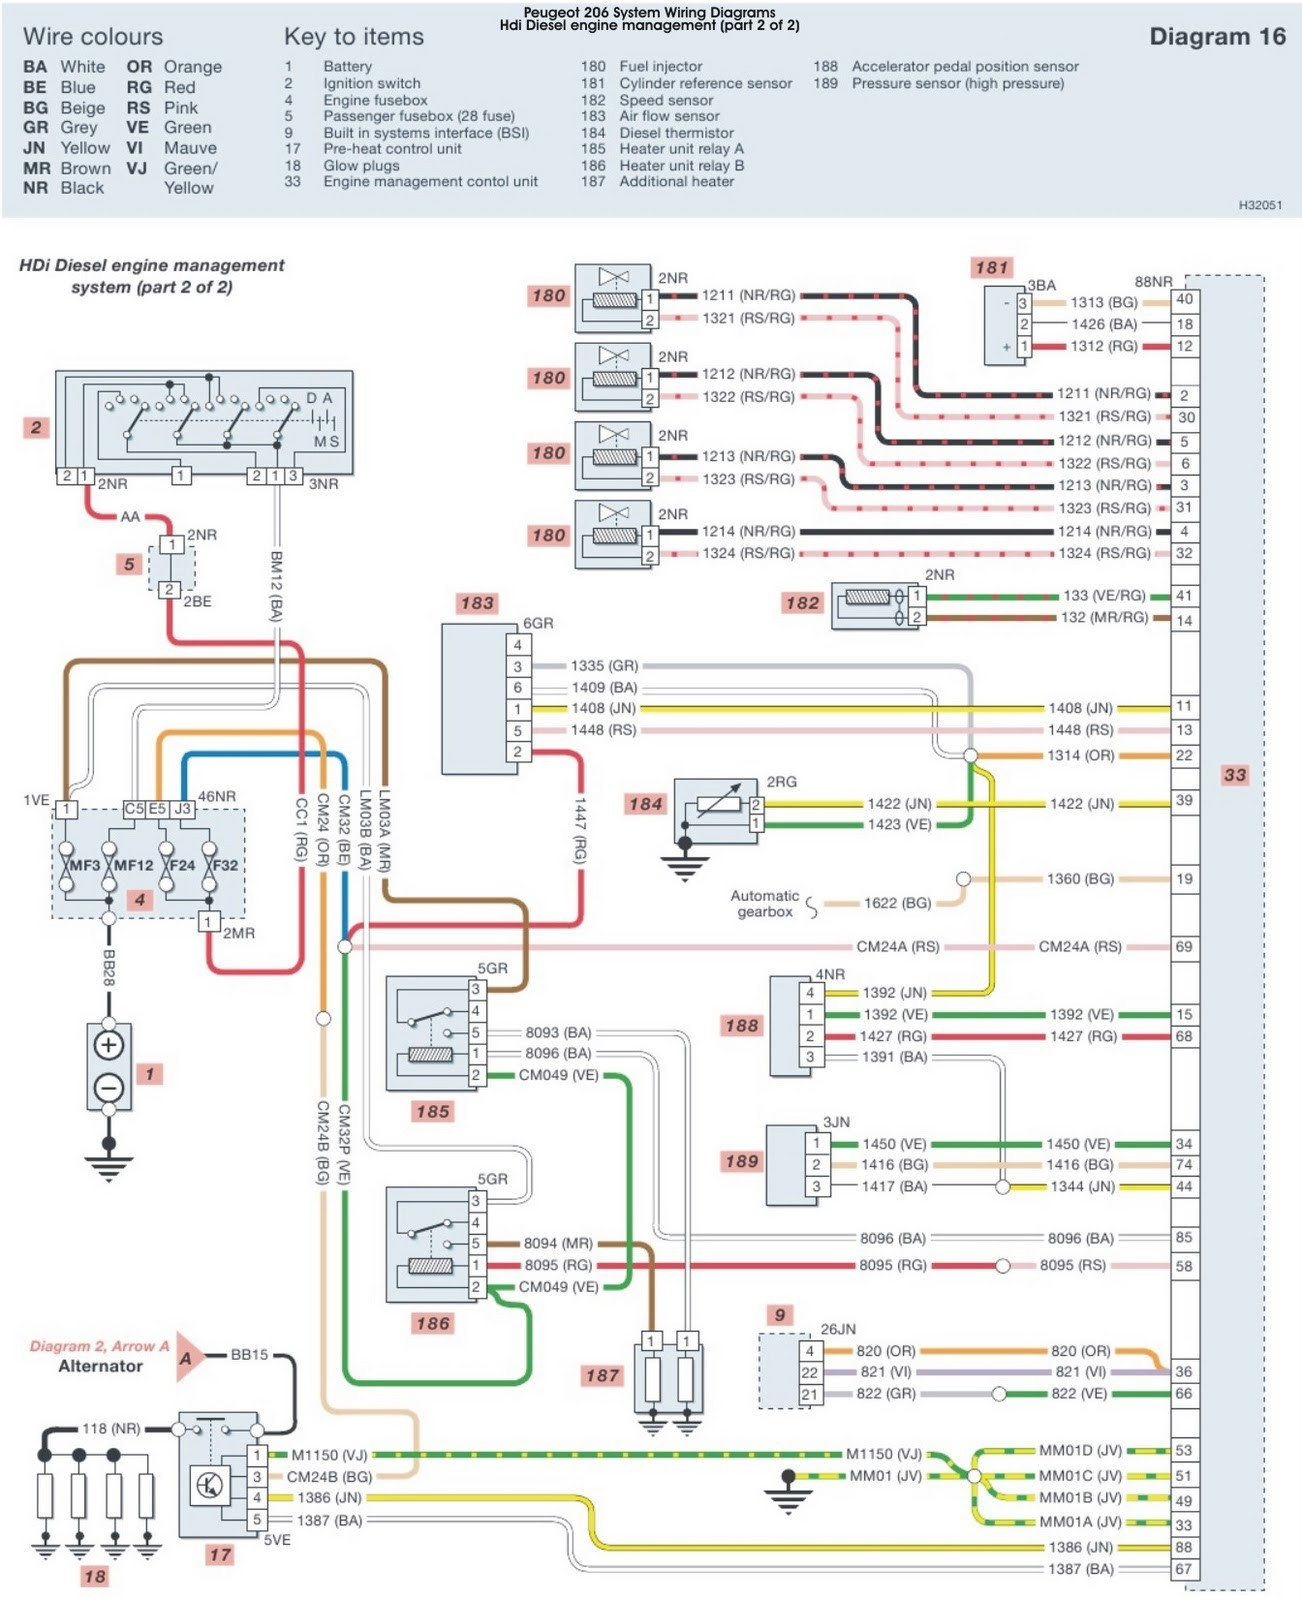 Spitronic Wiring Diagram Diagram] Dictator Engine Management Wiring Diagram Full Of Spitronic Wiring Diagram